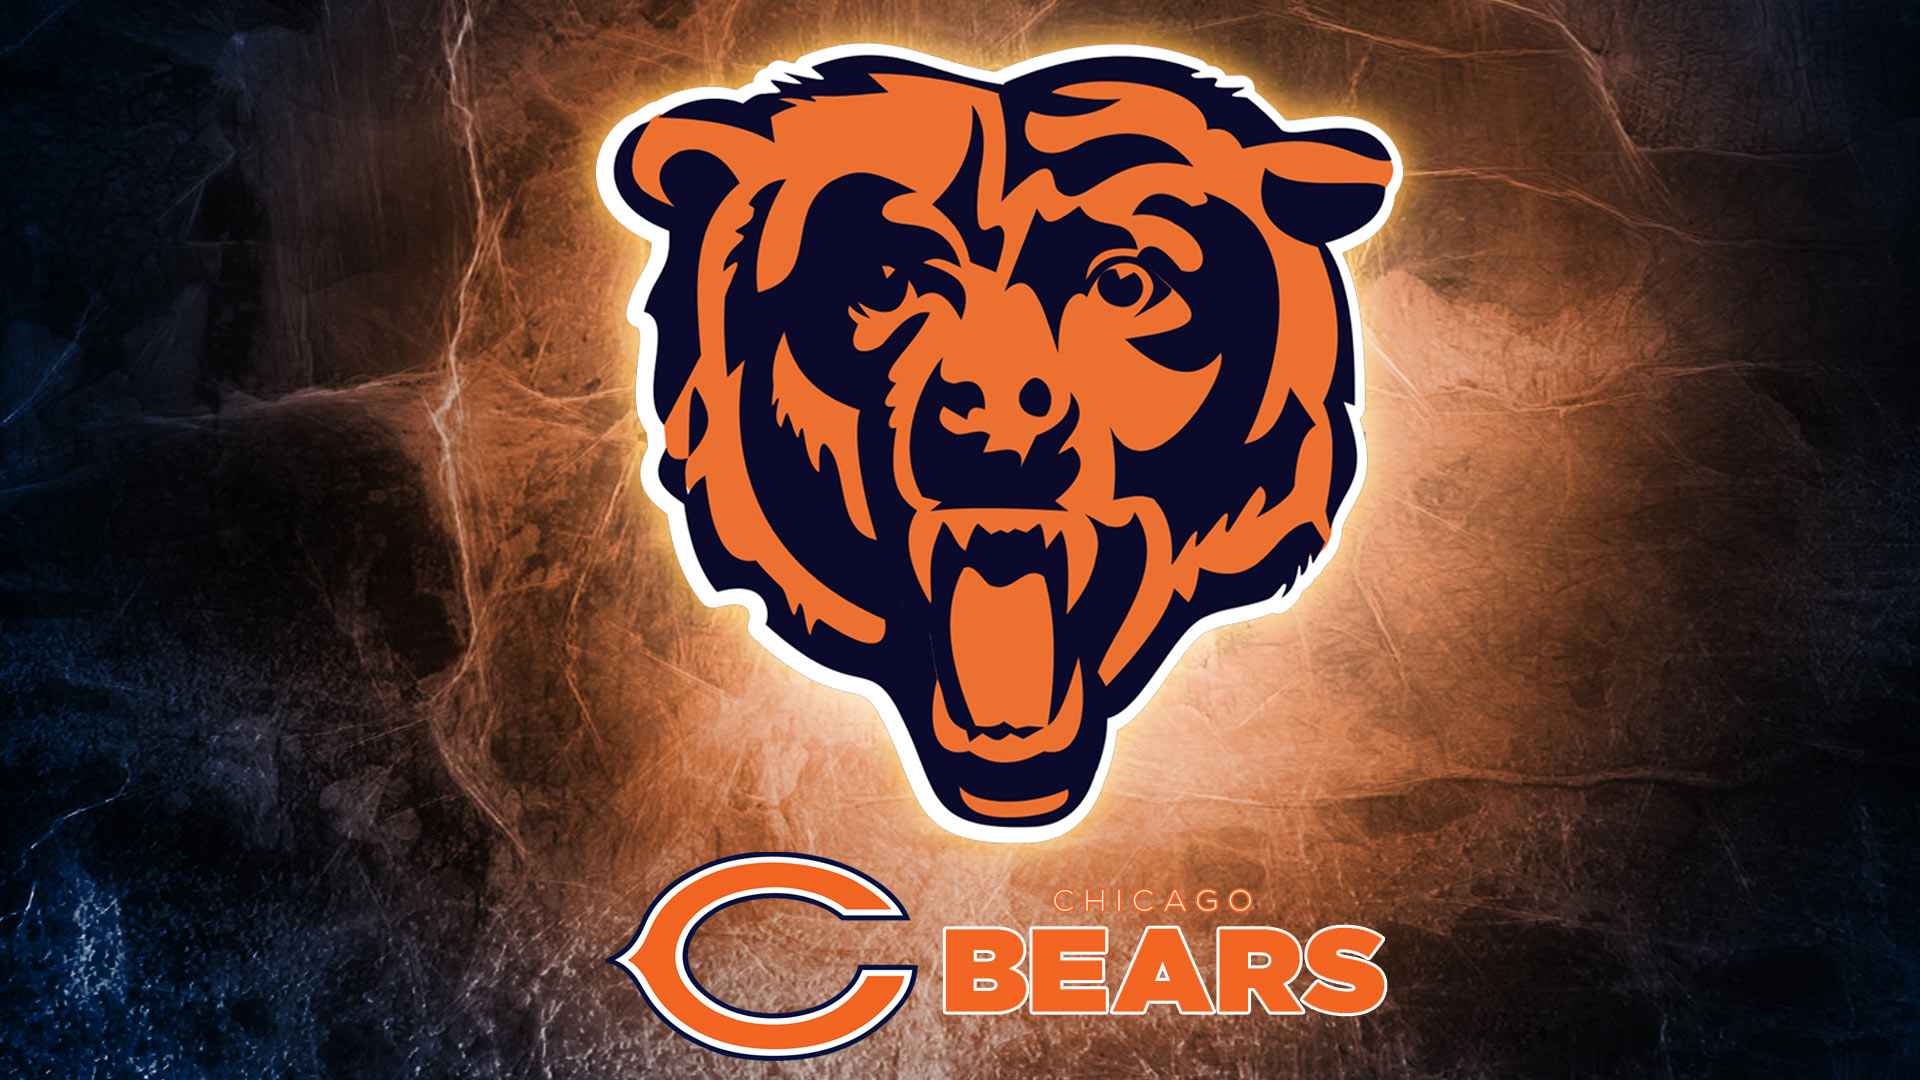 Download Chicago Bears logo Hd 1080p Wallpaper screen size 1920X1080 1920x1080